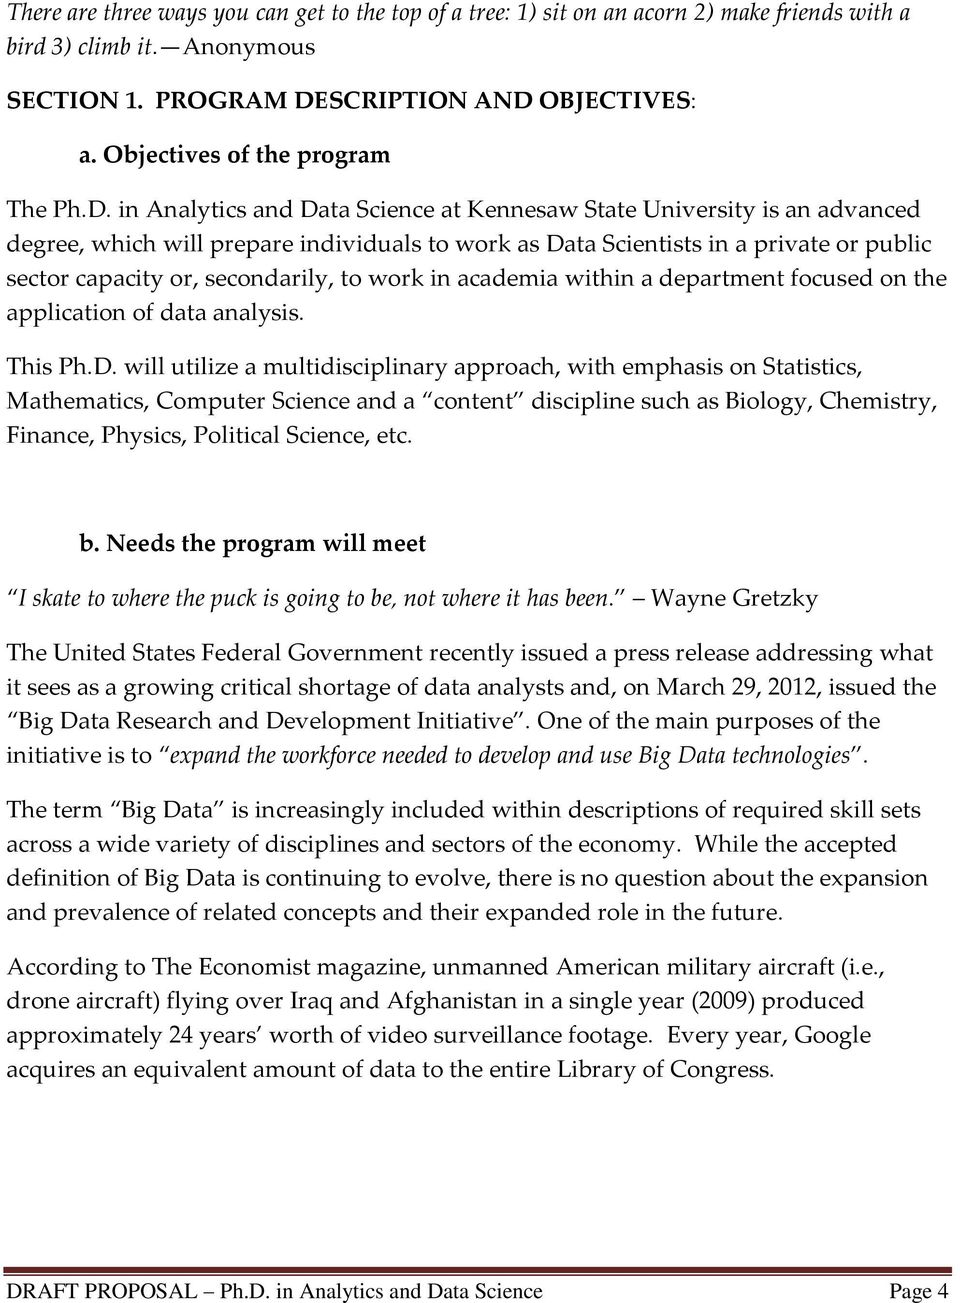 in Analytics and Data Science at Kennesaw State University is an advanced degree, which will prepare individuals to work as Data Scientists in a private or public sector capacity or, secondarily, to